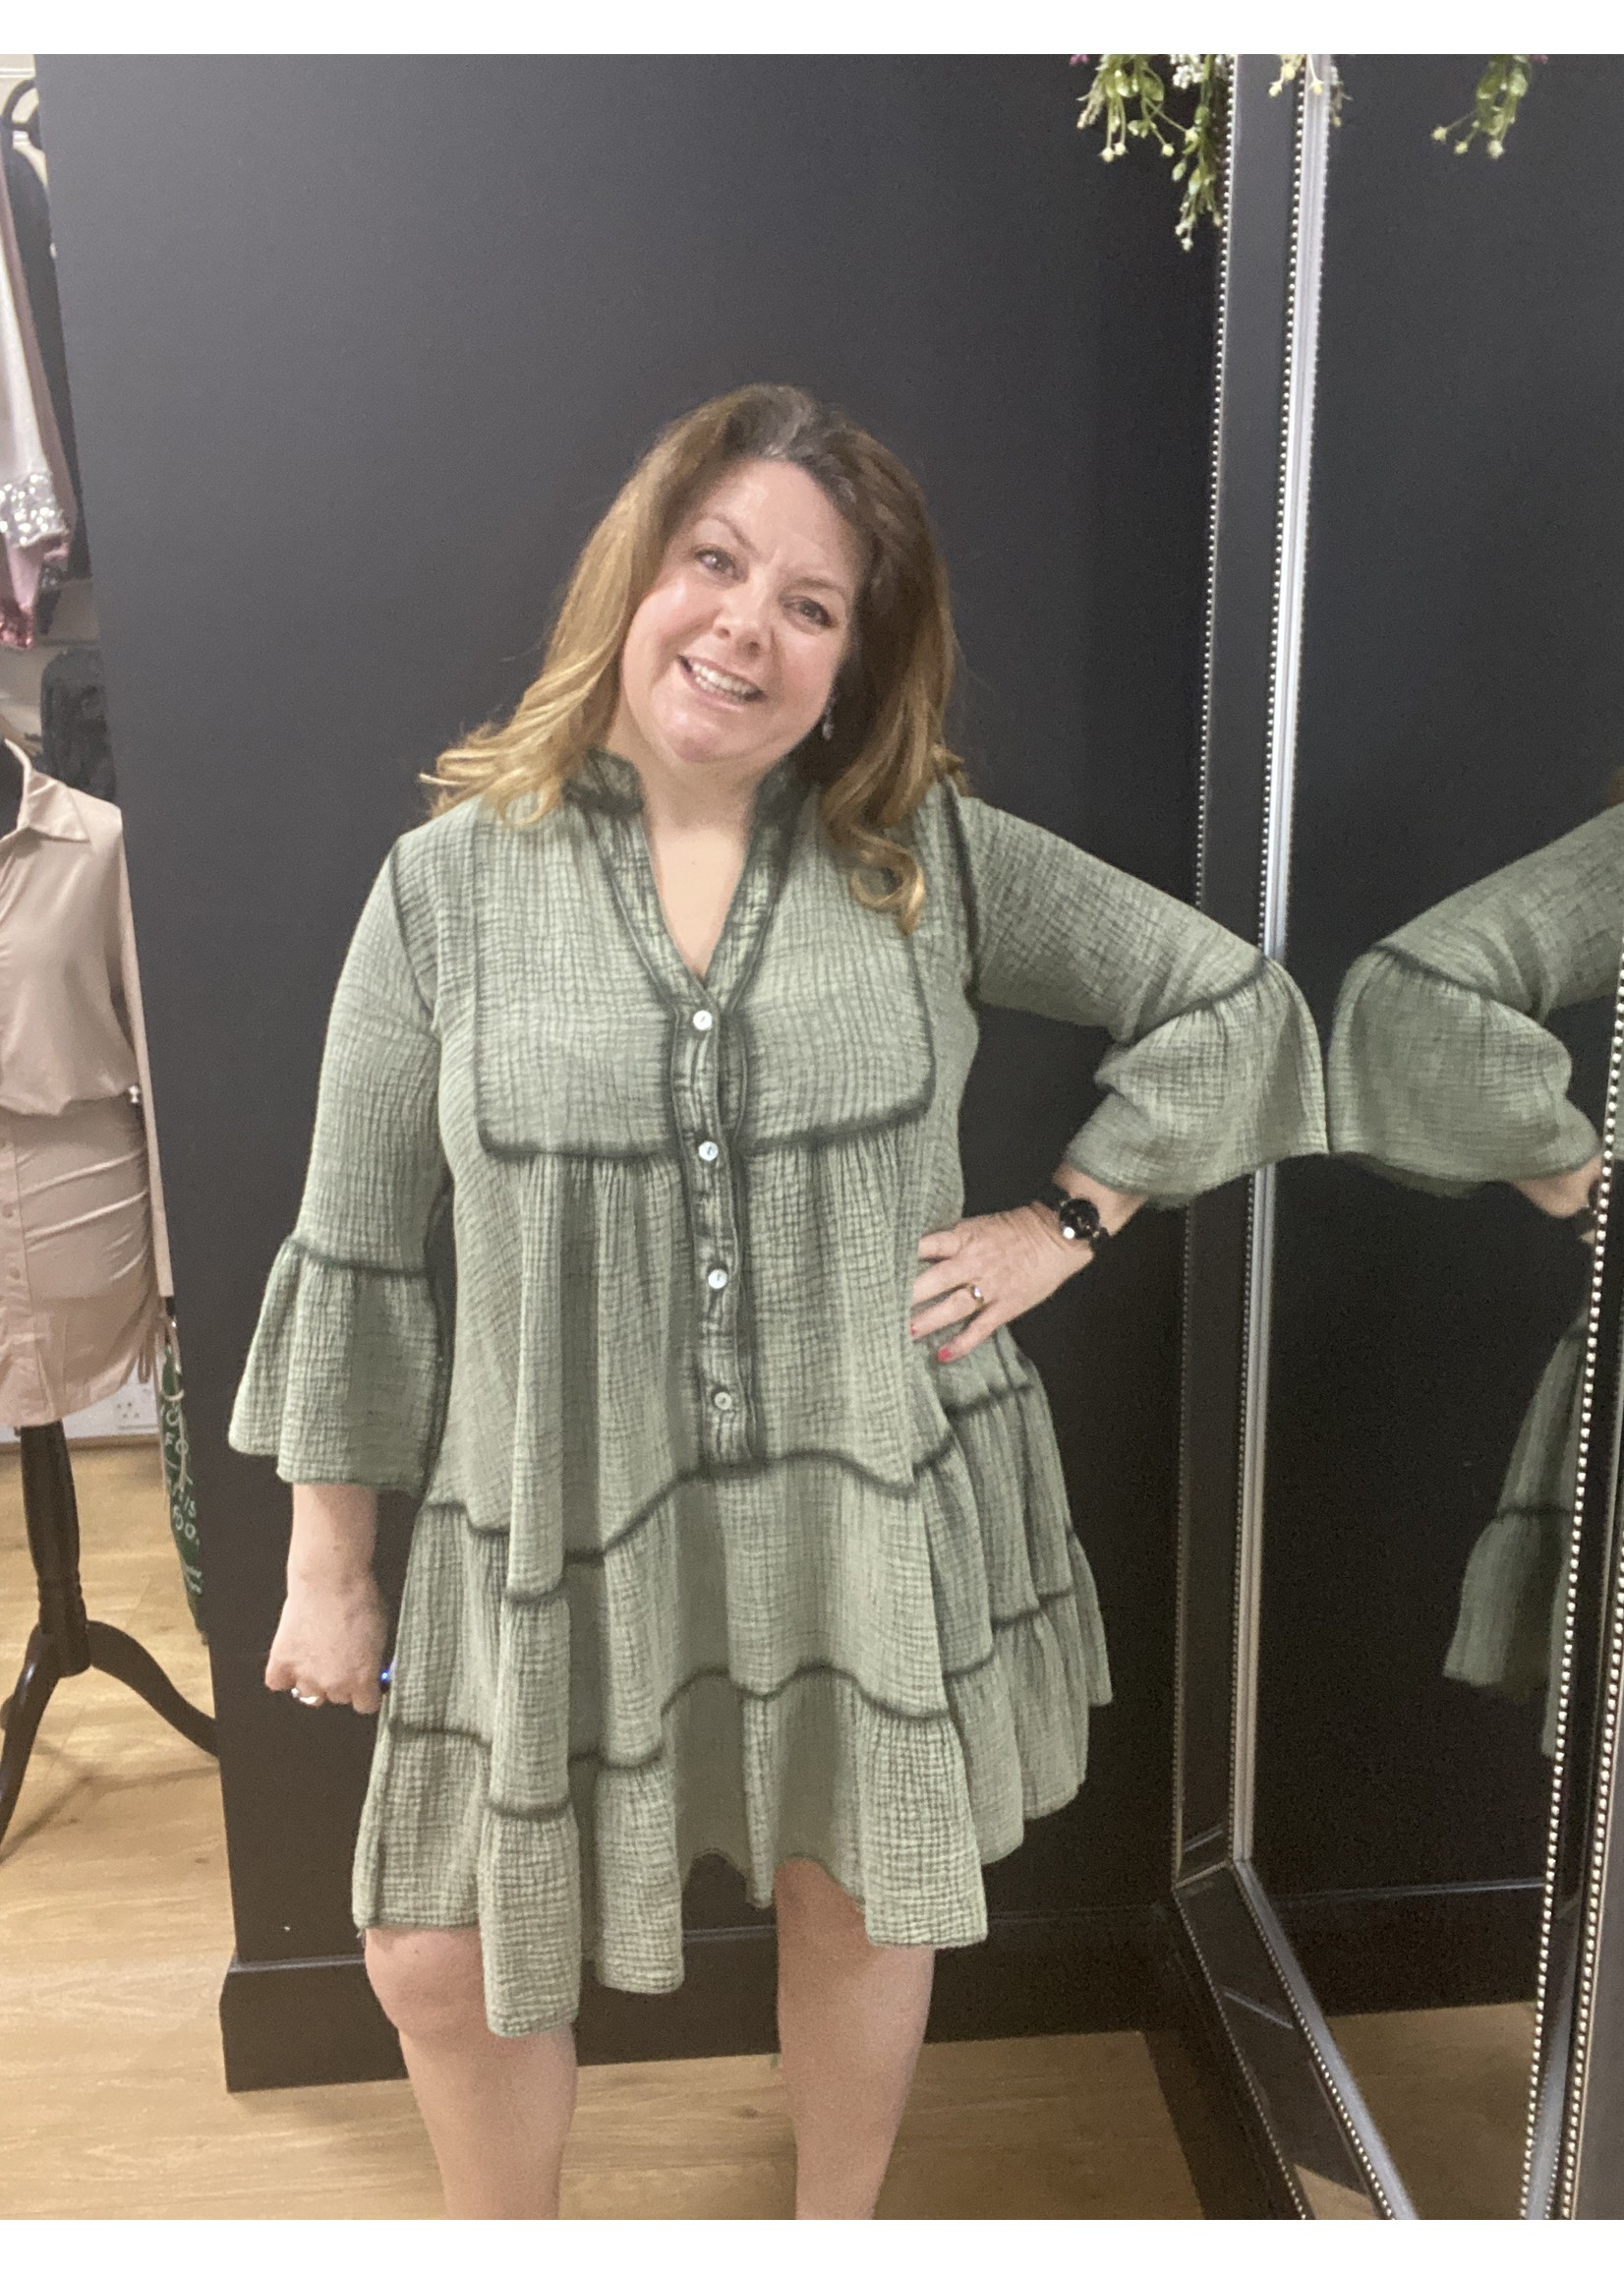 Deanna cheesecloth tiered dress